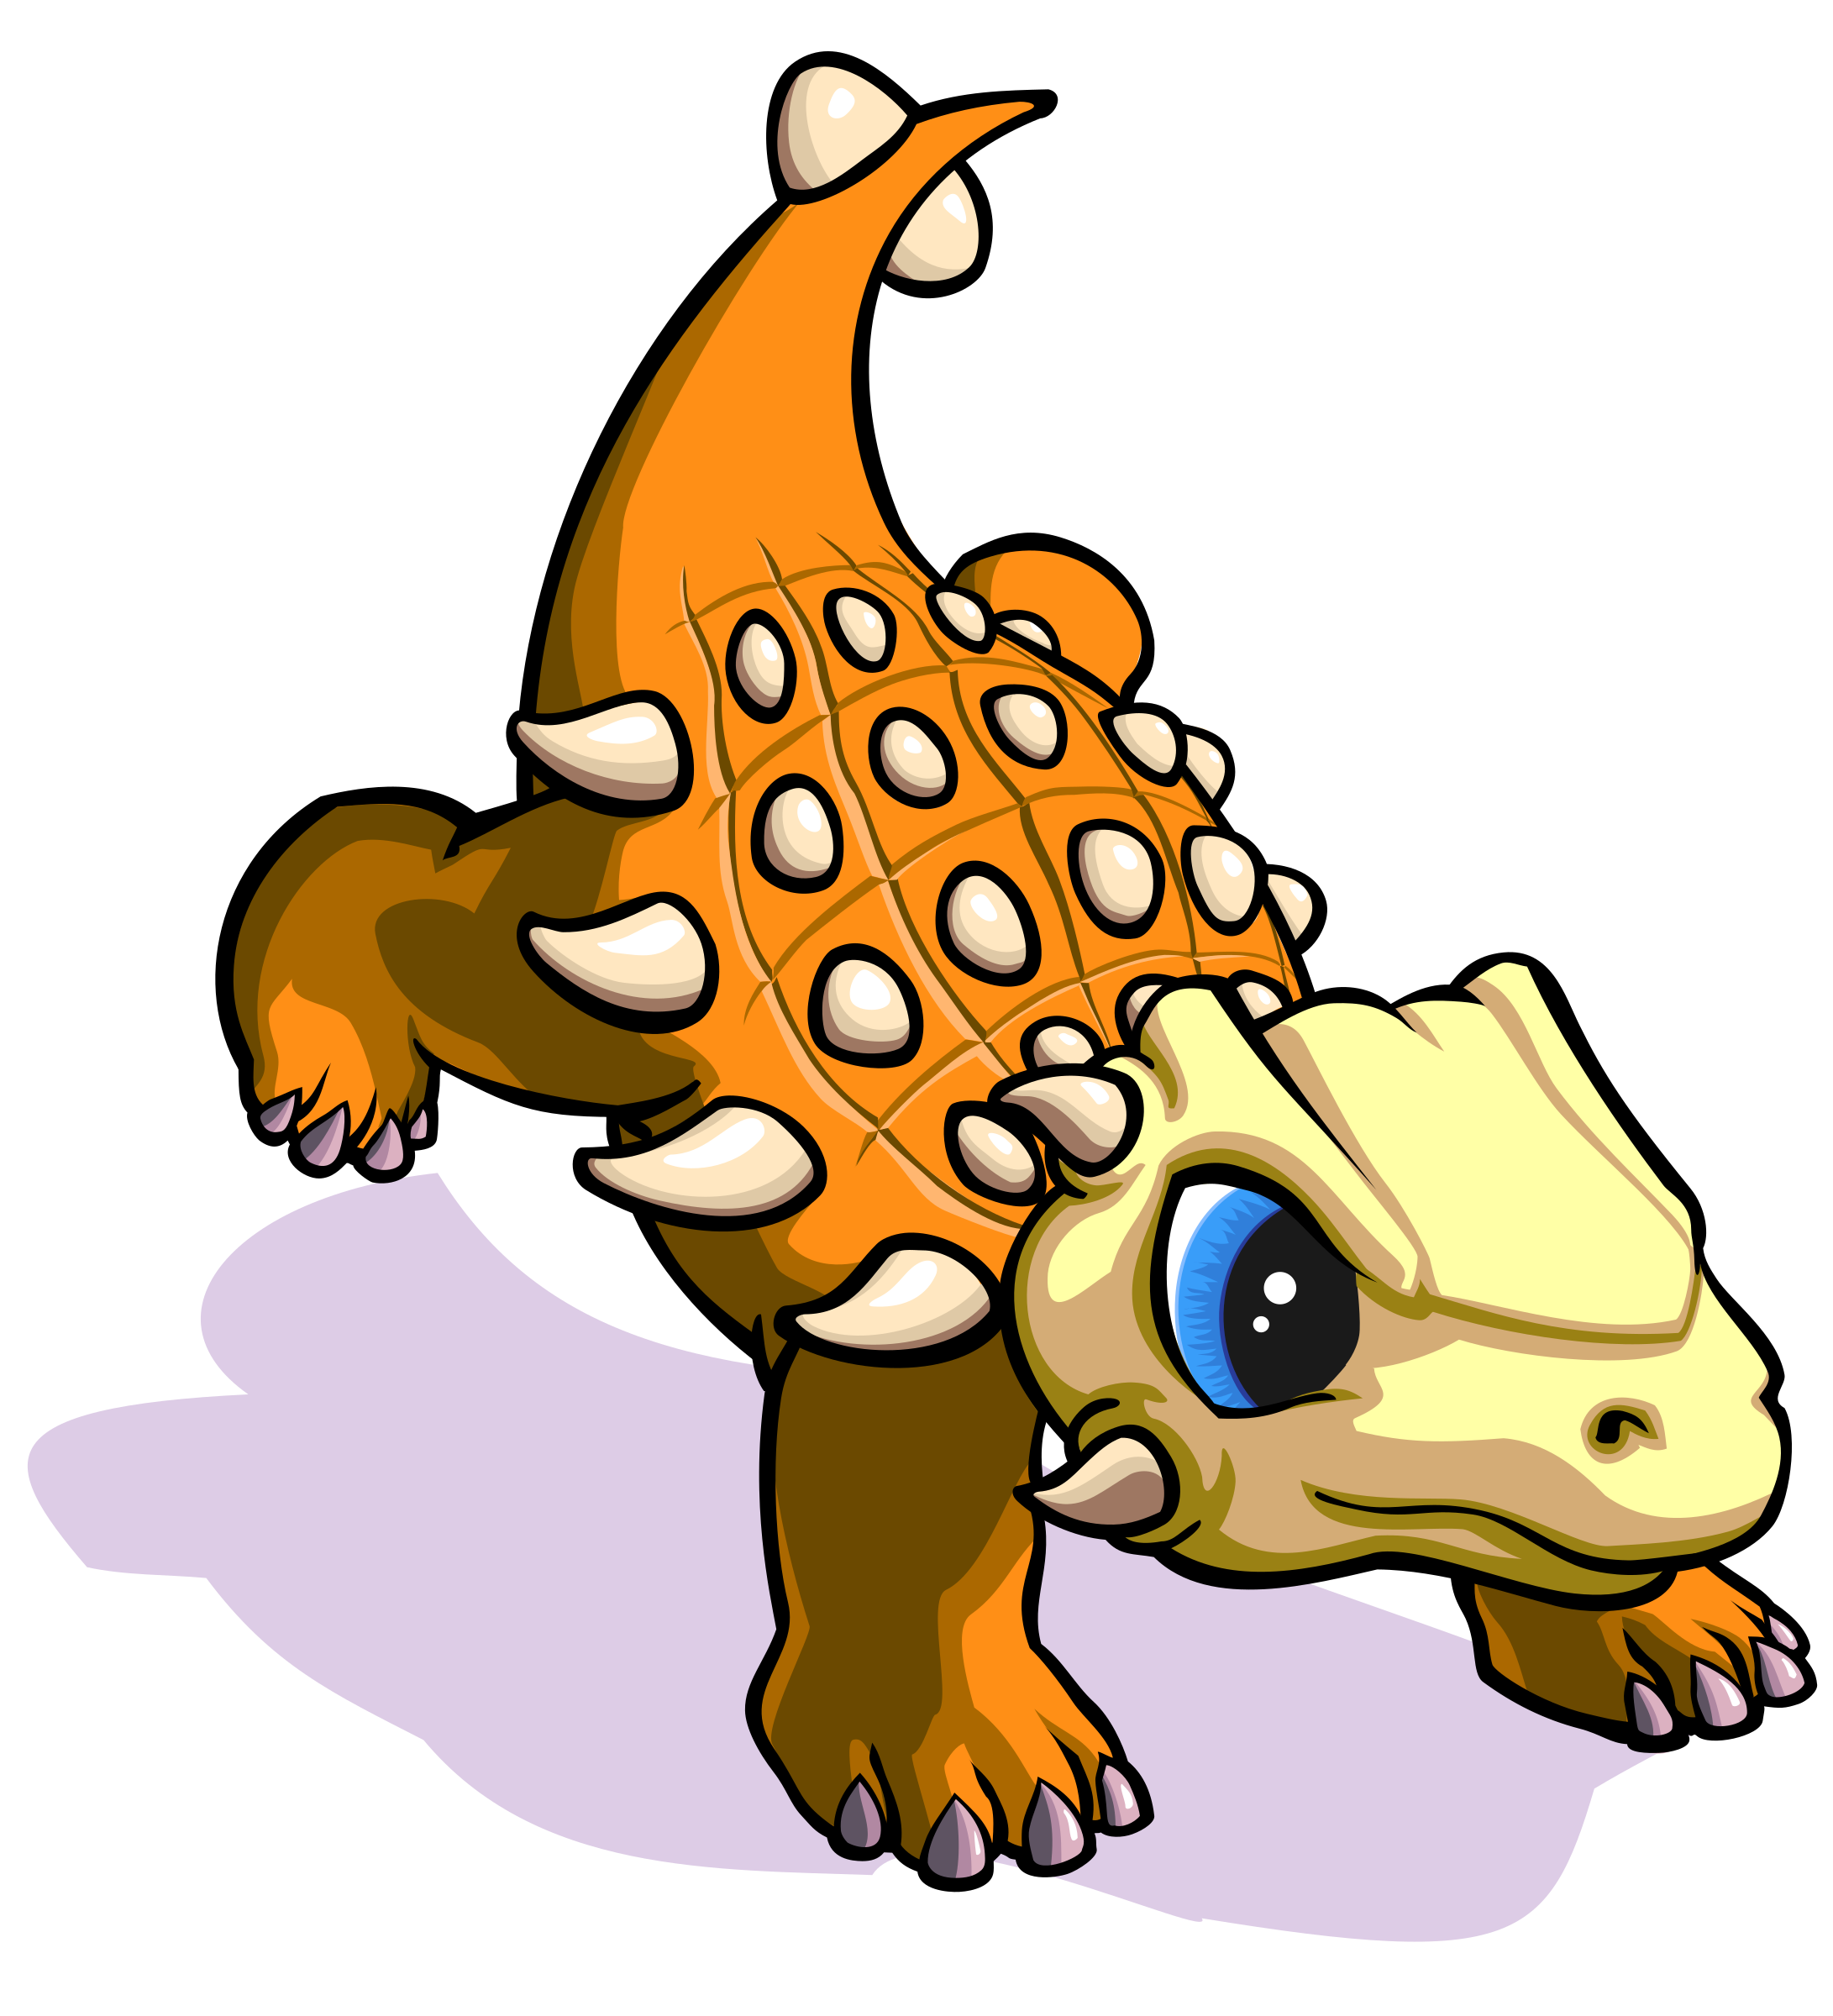 Khủng Long Giáp 2 - Ankylosaurus Baby 2 by 星球